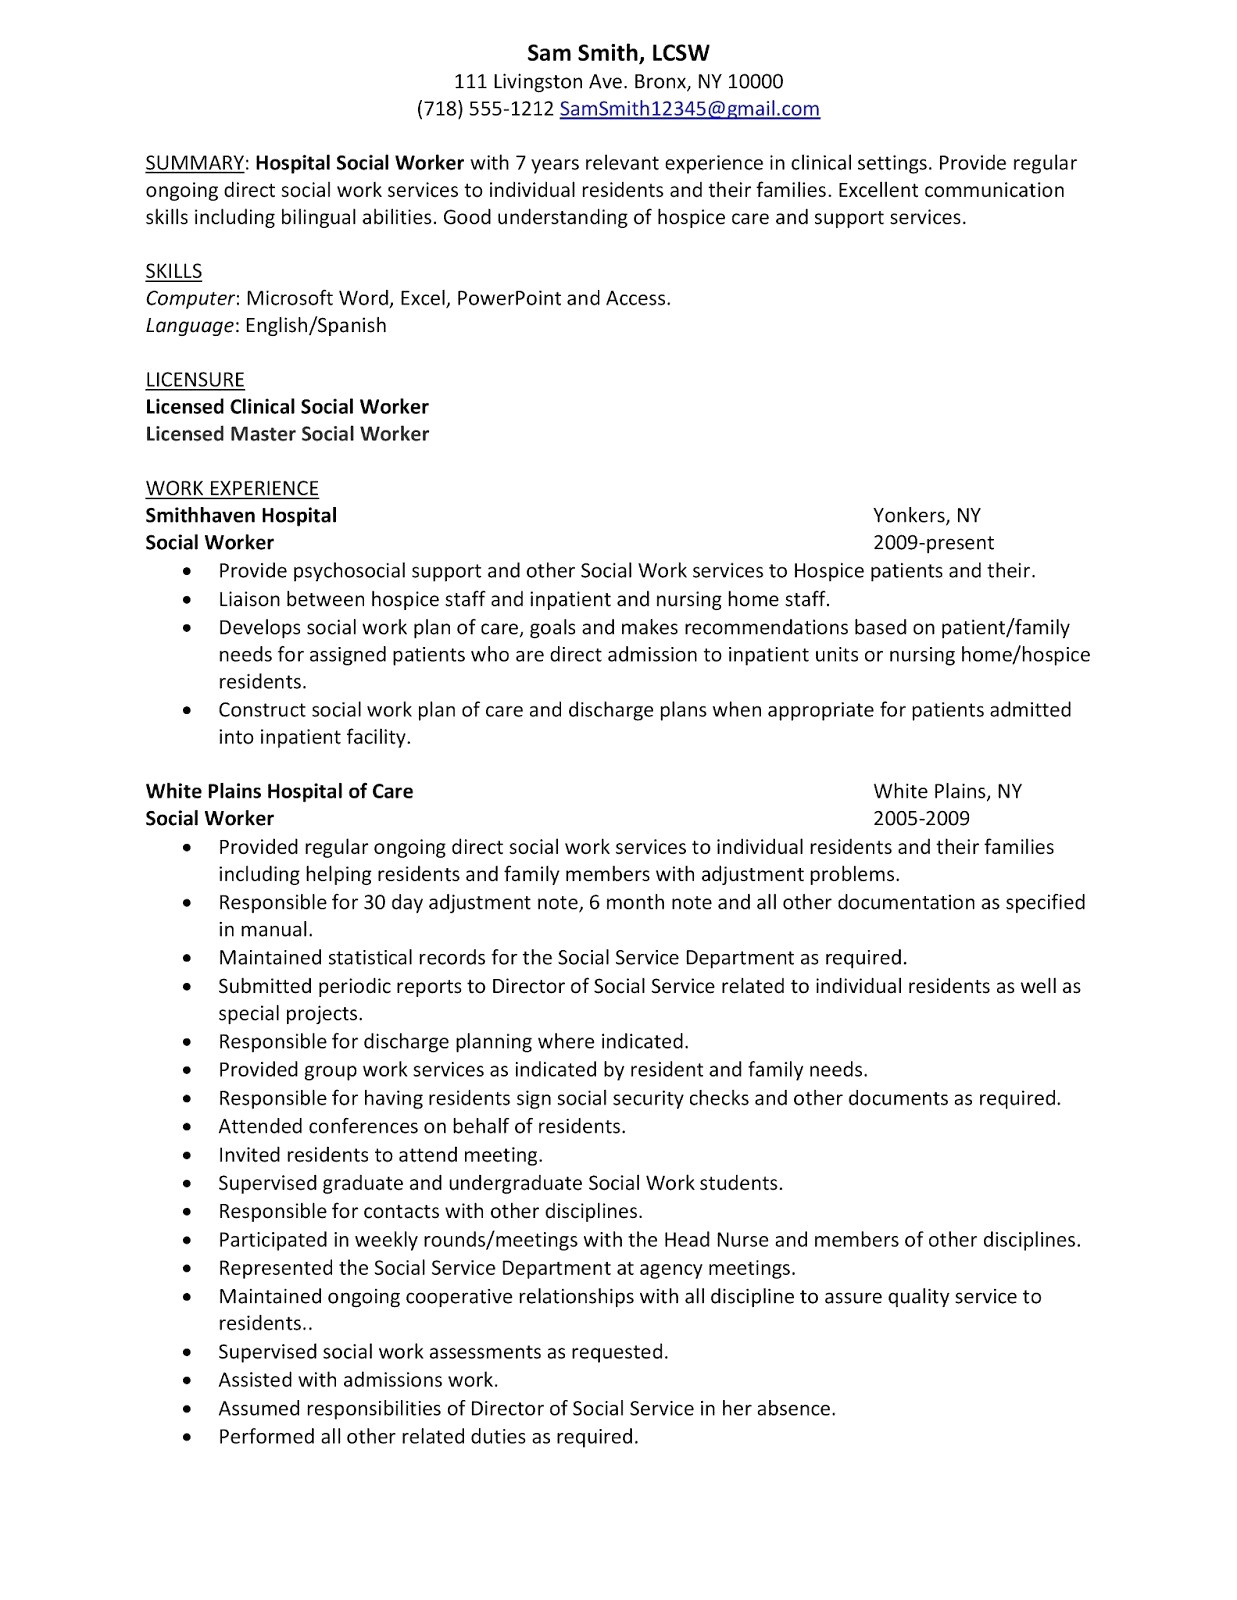 resume summary ideas Collection-Lovely social Worker Resume Sample Fresh 50 Best Gallery Resume Summary Resume Summary Examples Fresh 17-j